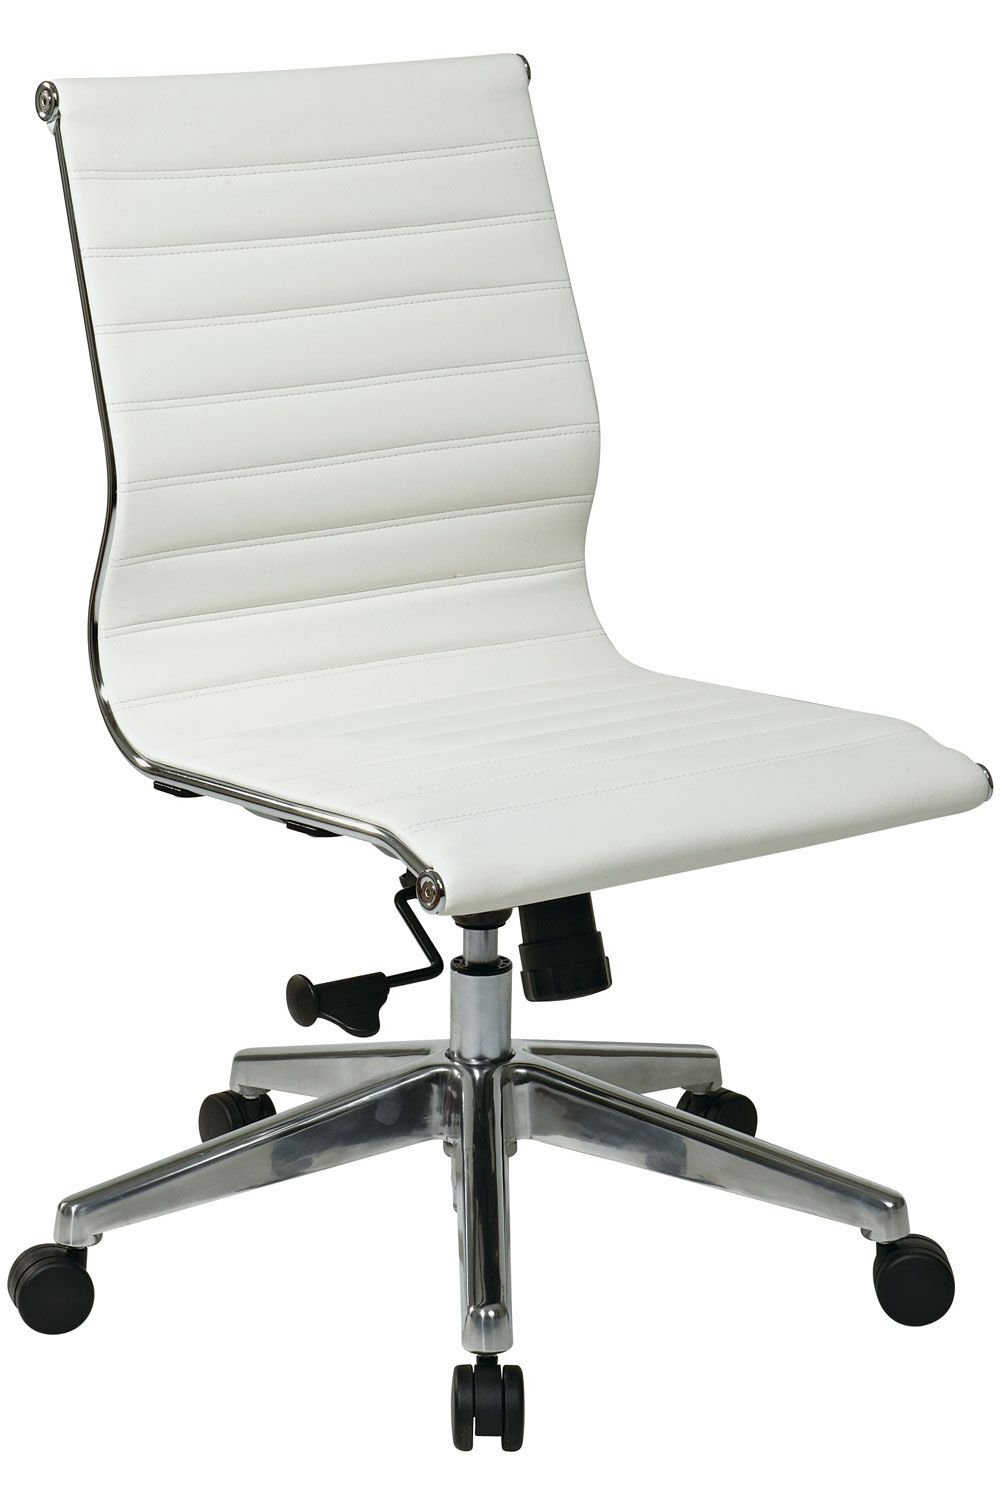 70 Armless Leather Office Chairs Executive Home Furniture Check More At Http